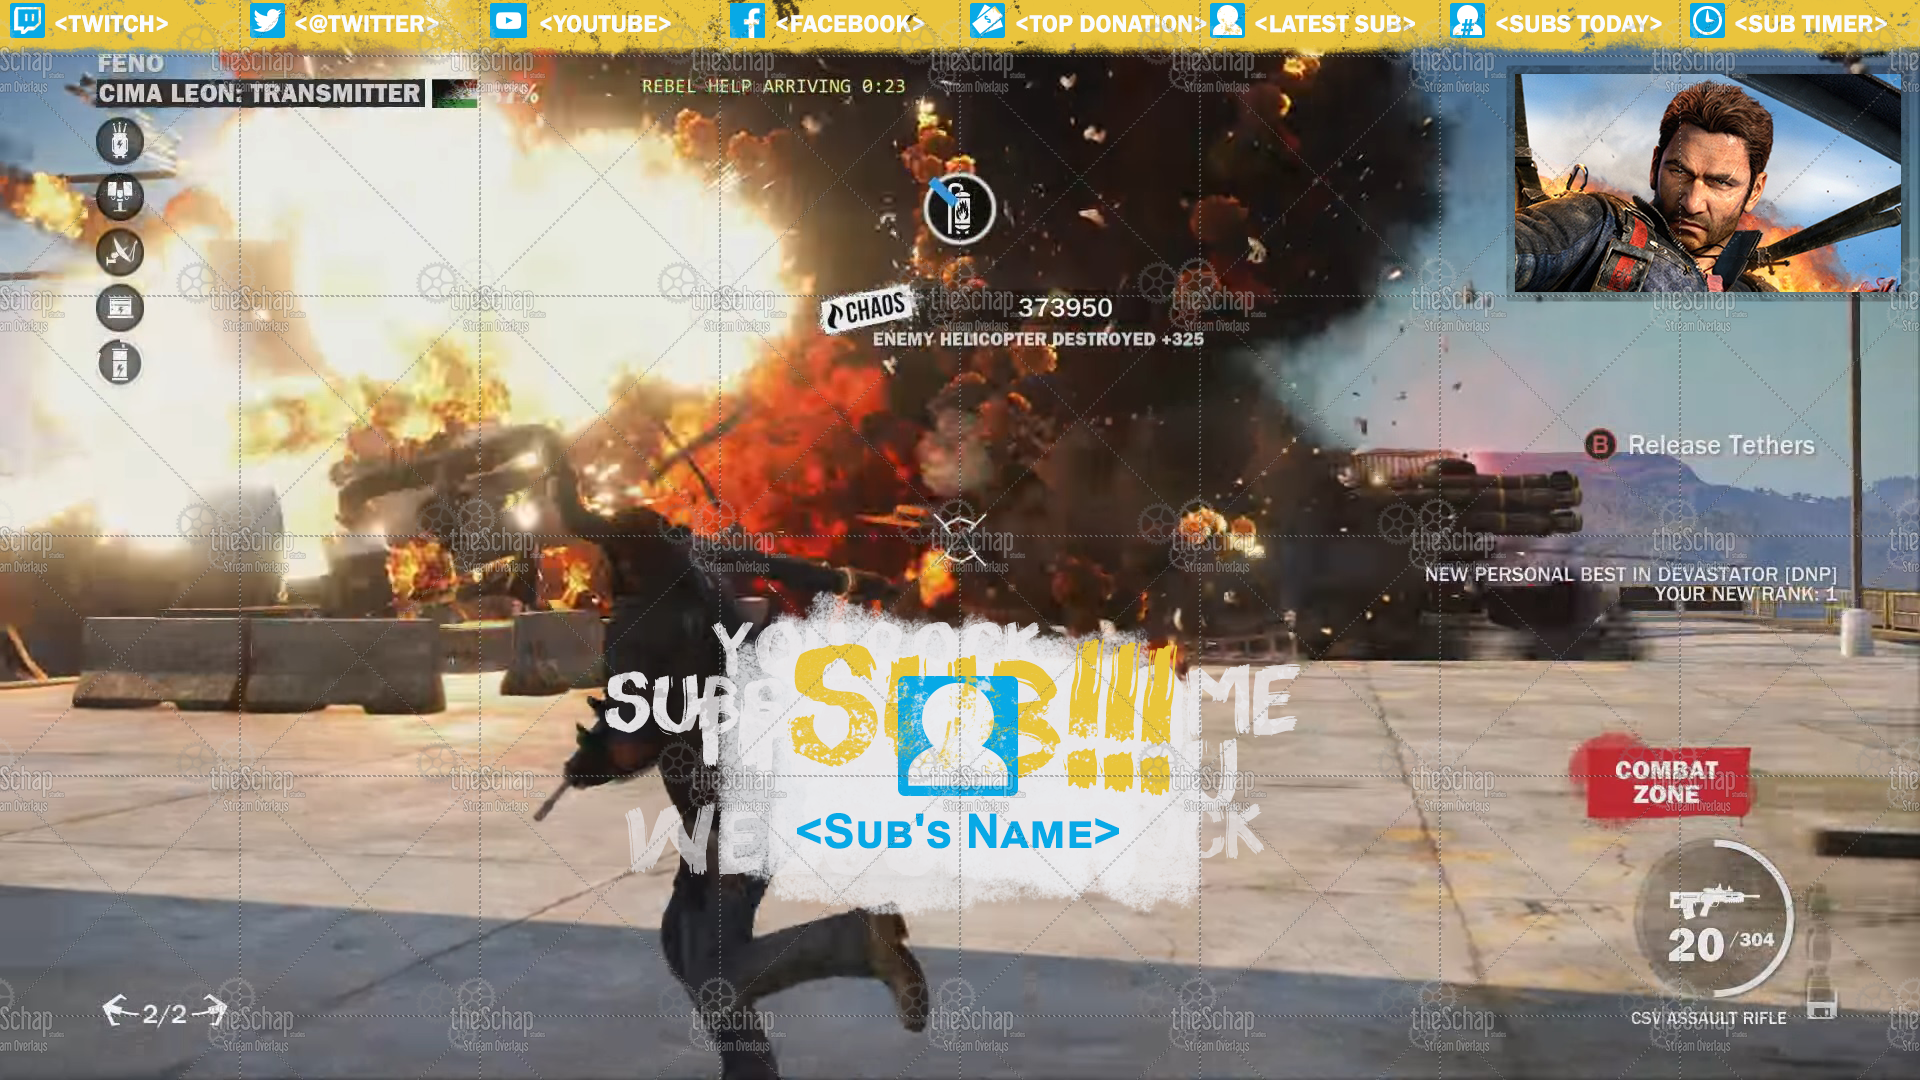 theSchap_JustCause3_Preview